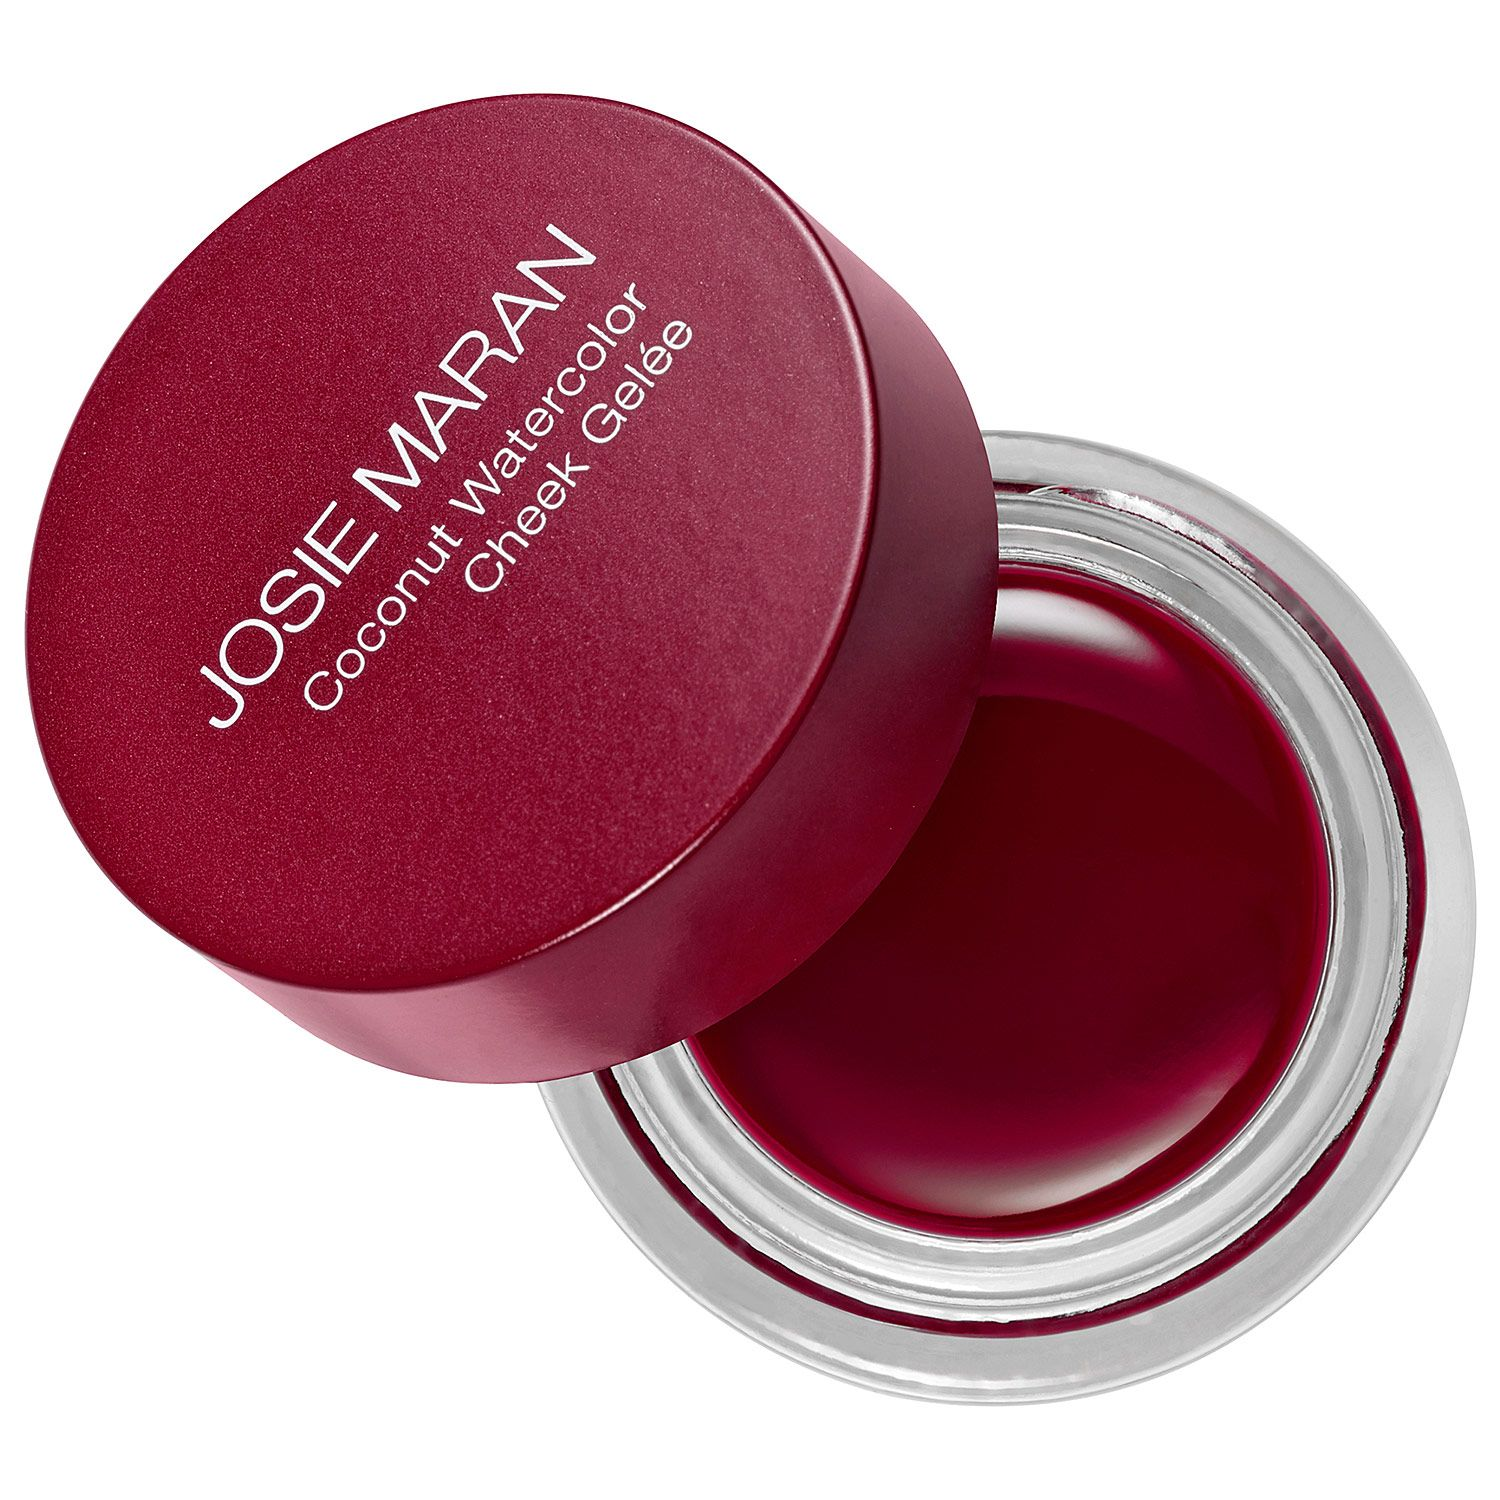 Coconut Watercolor Cheek Gelee Josie Maran Sephora Cream